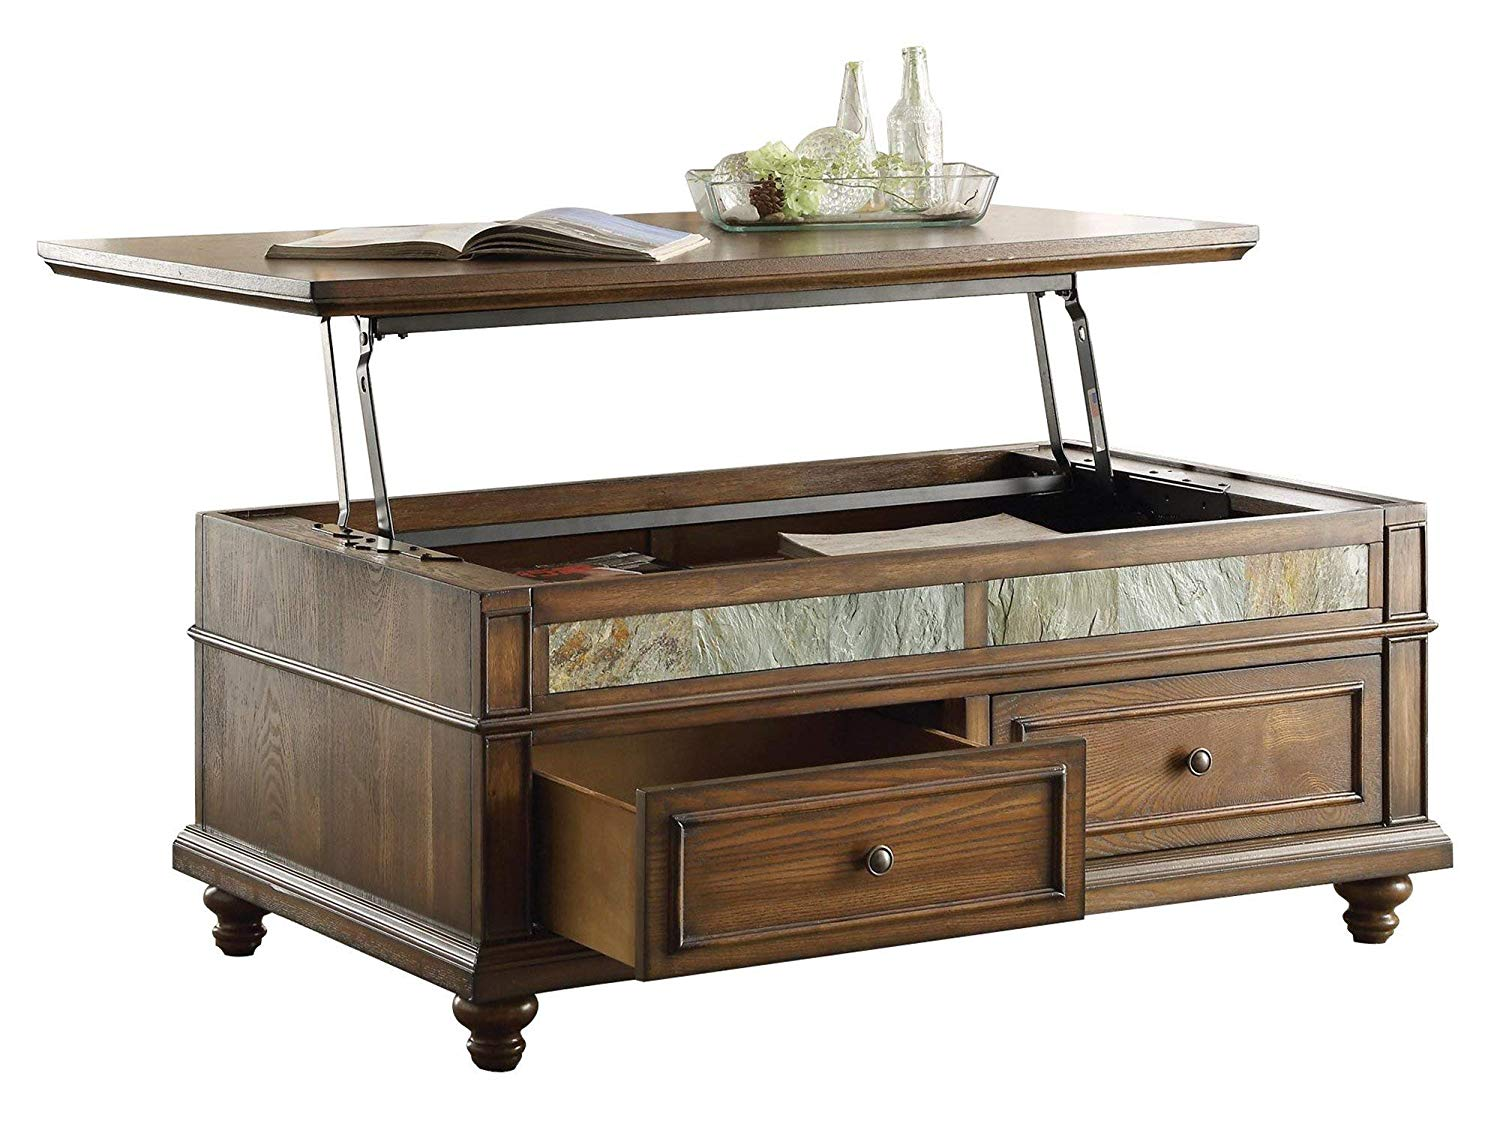 Caffey Craftsman Lift Top Cocktail Table on Casters in Brown Cherry